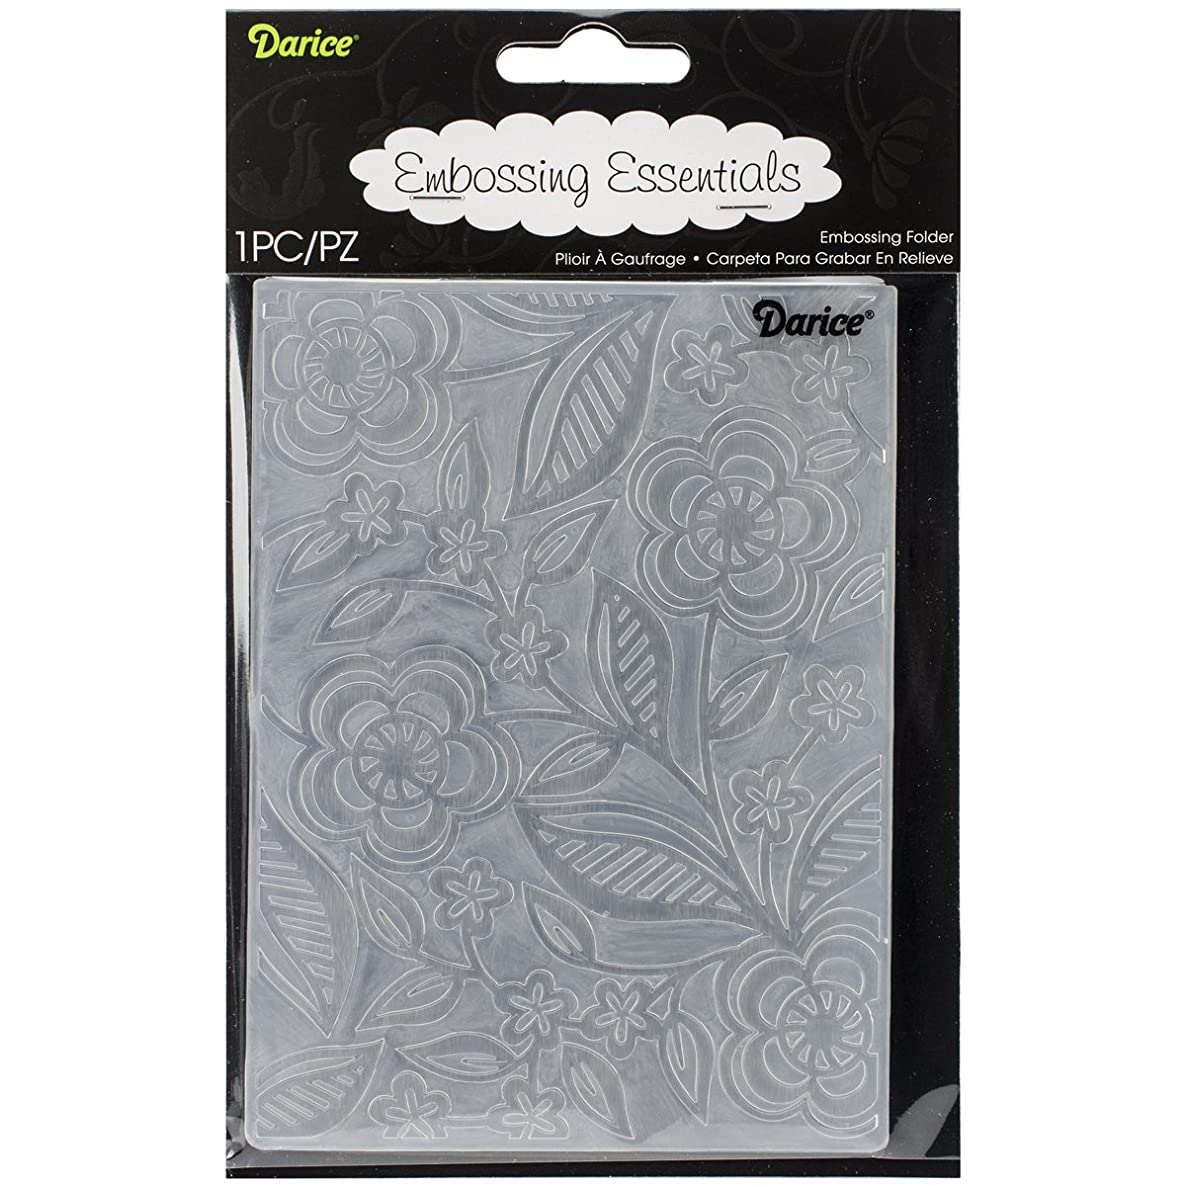 Darice Embossing Folder, 4.25 by 5.75-Inch, Dainty Flower